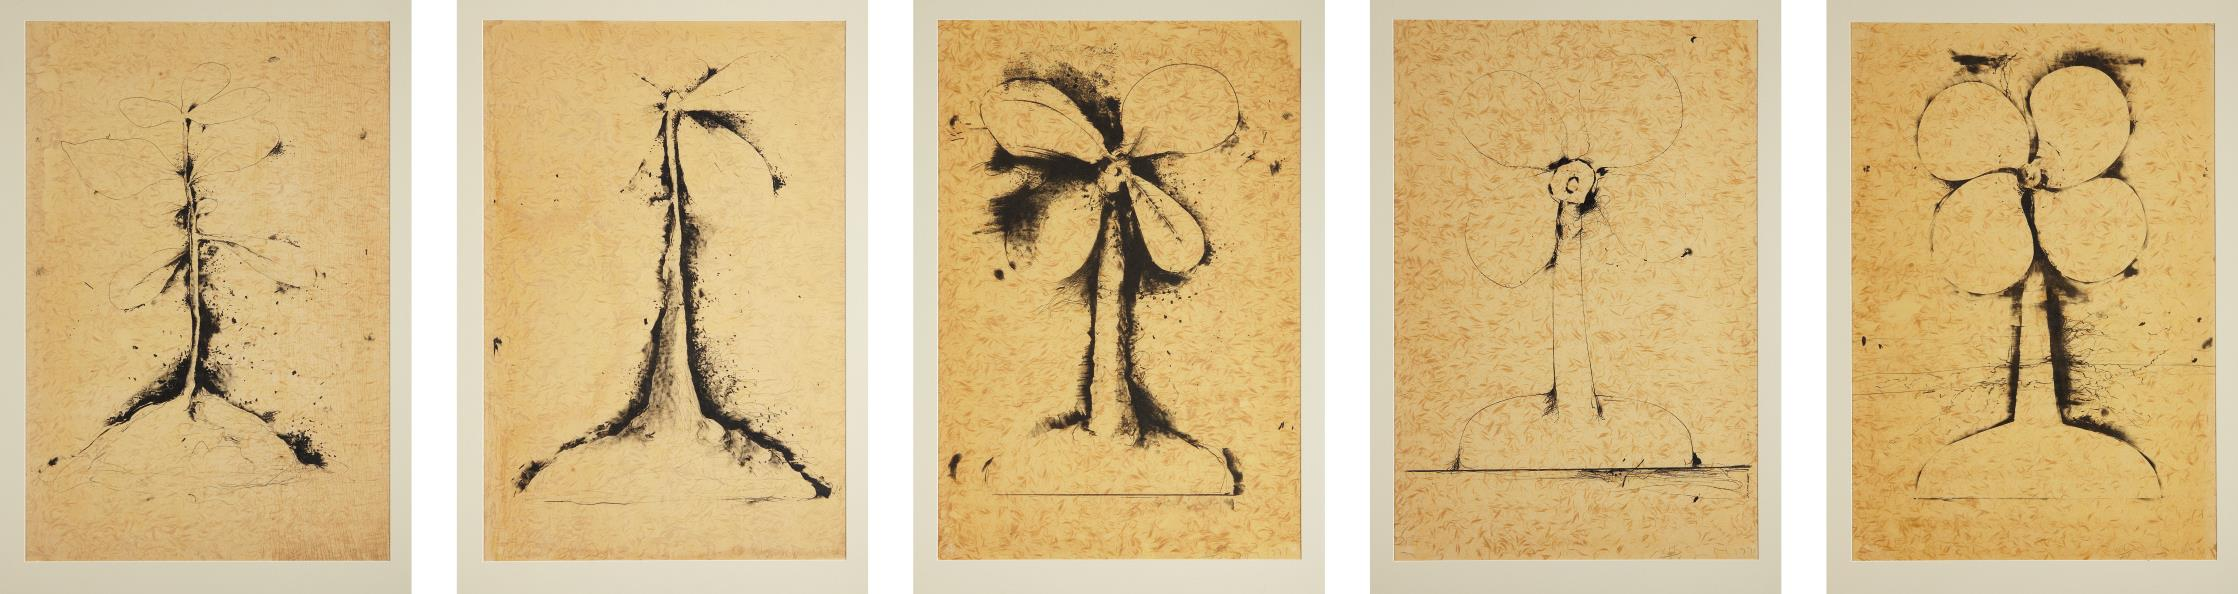 Jim Dine-Lithographs of the Sculpture: The Plant Becomes a Fan-1975